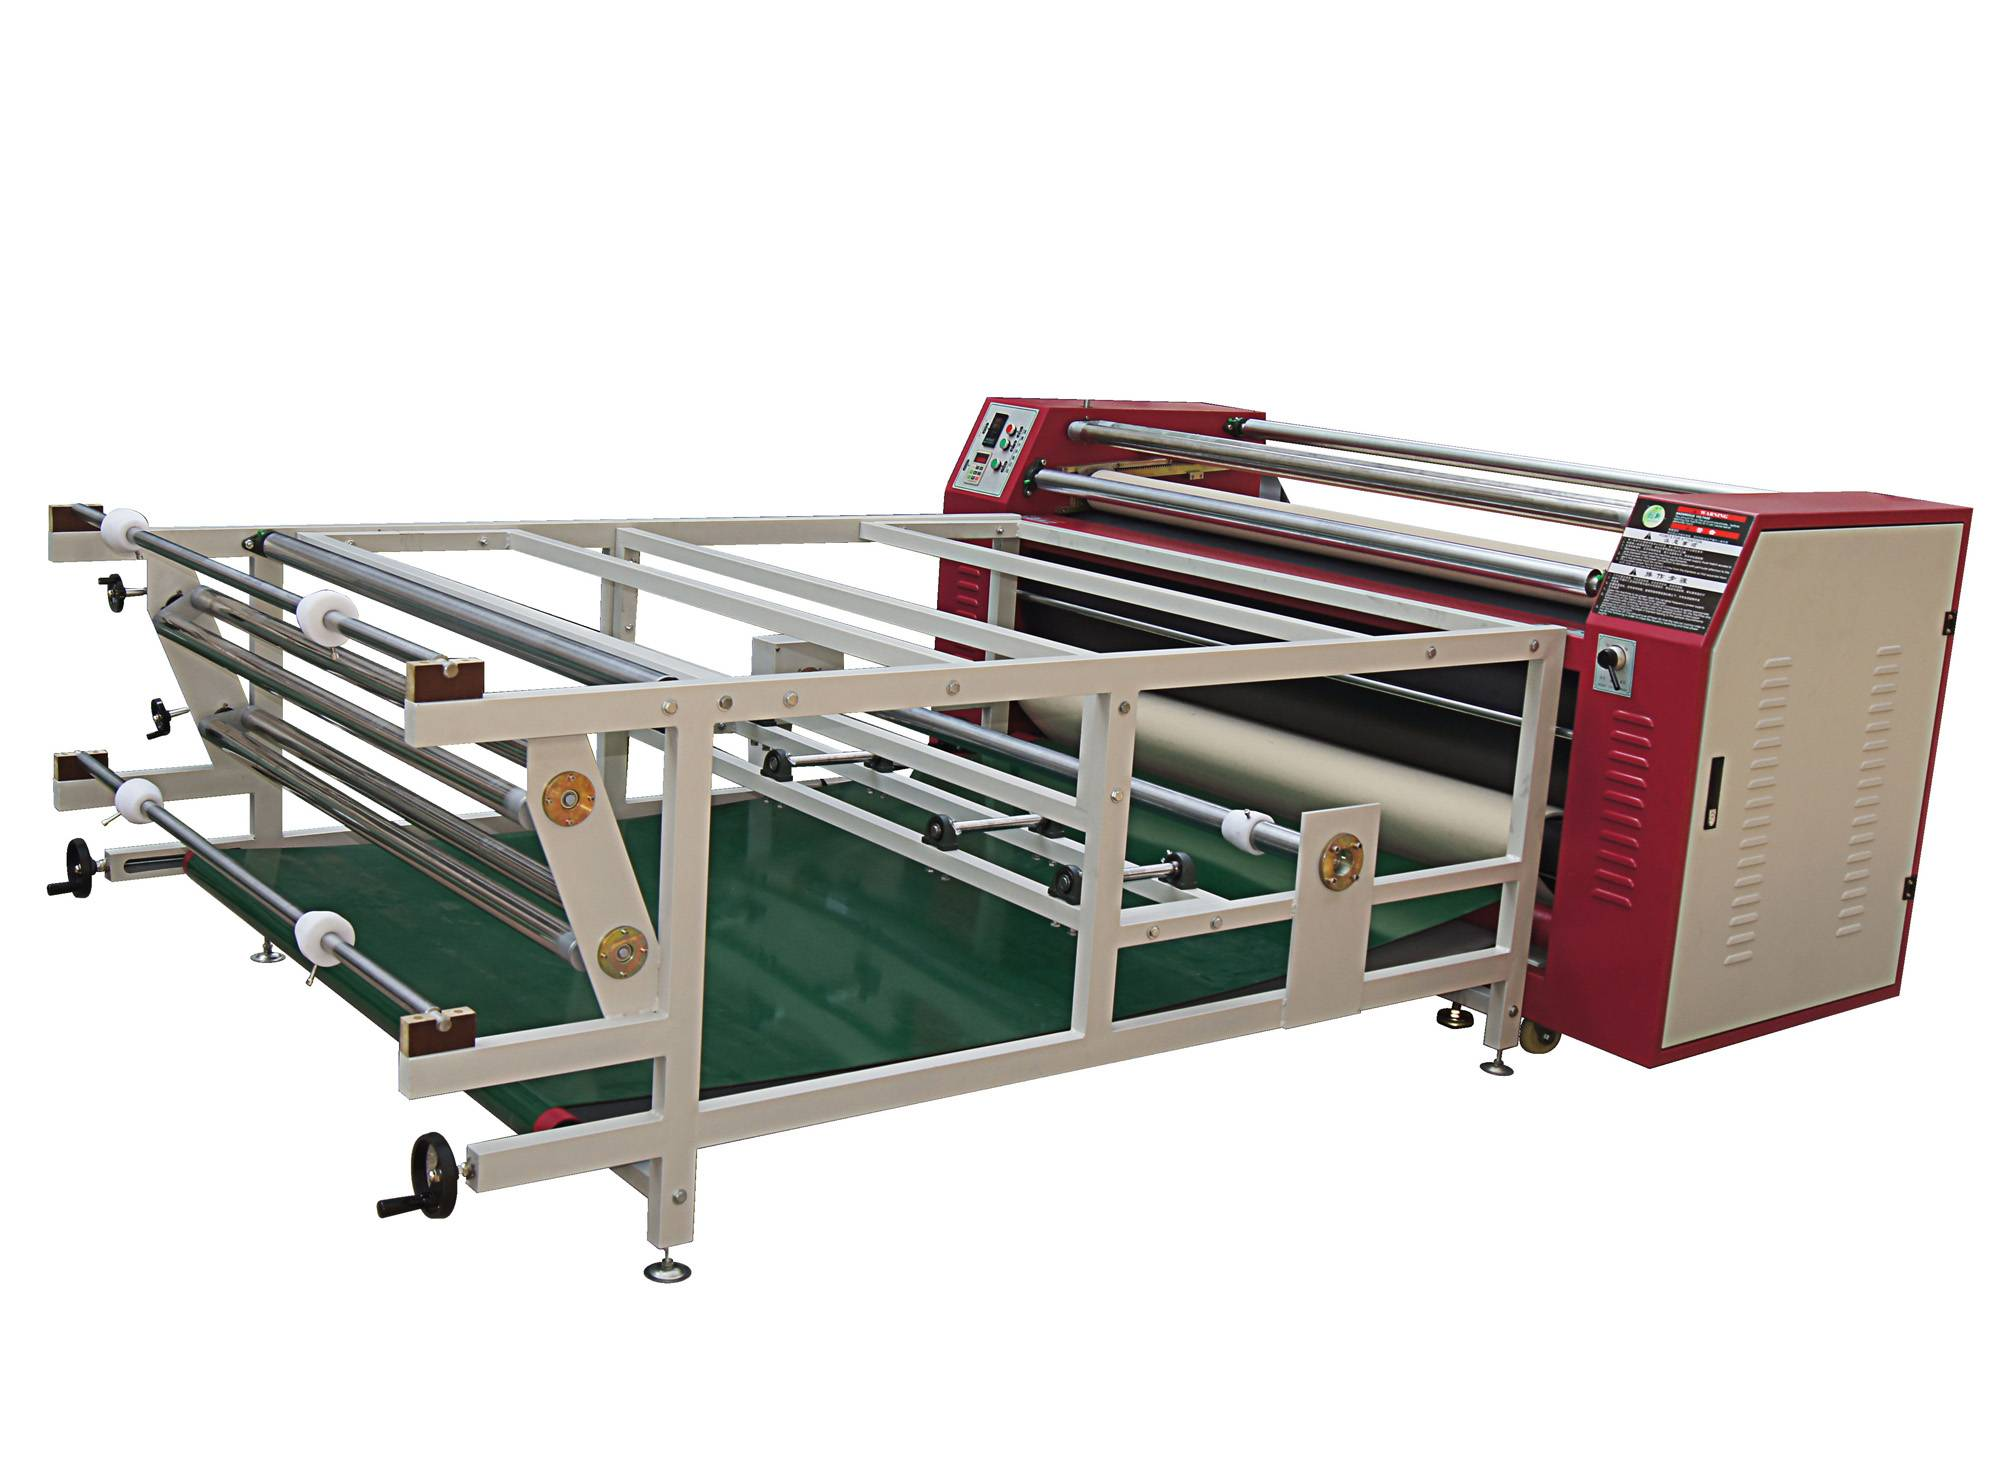 Big Size Sublimation Heat Transfer Machines for Roller Textile Printing BD420/1700